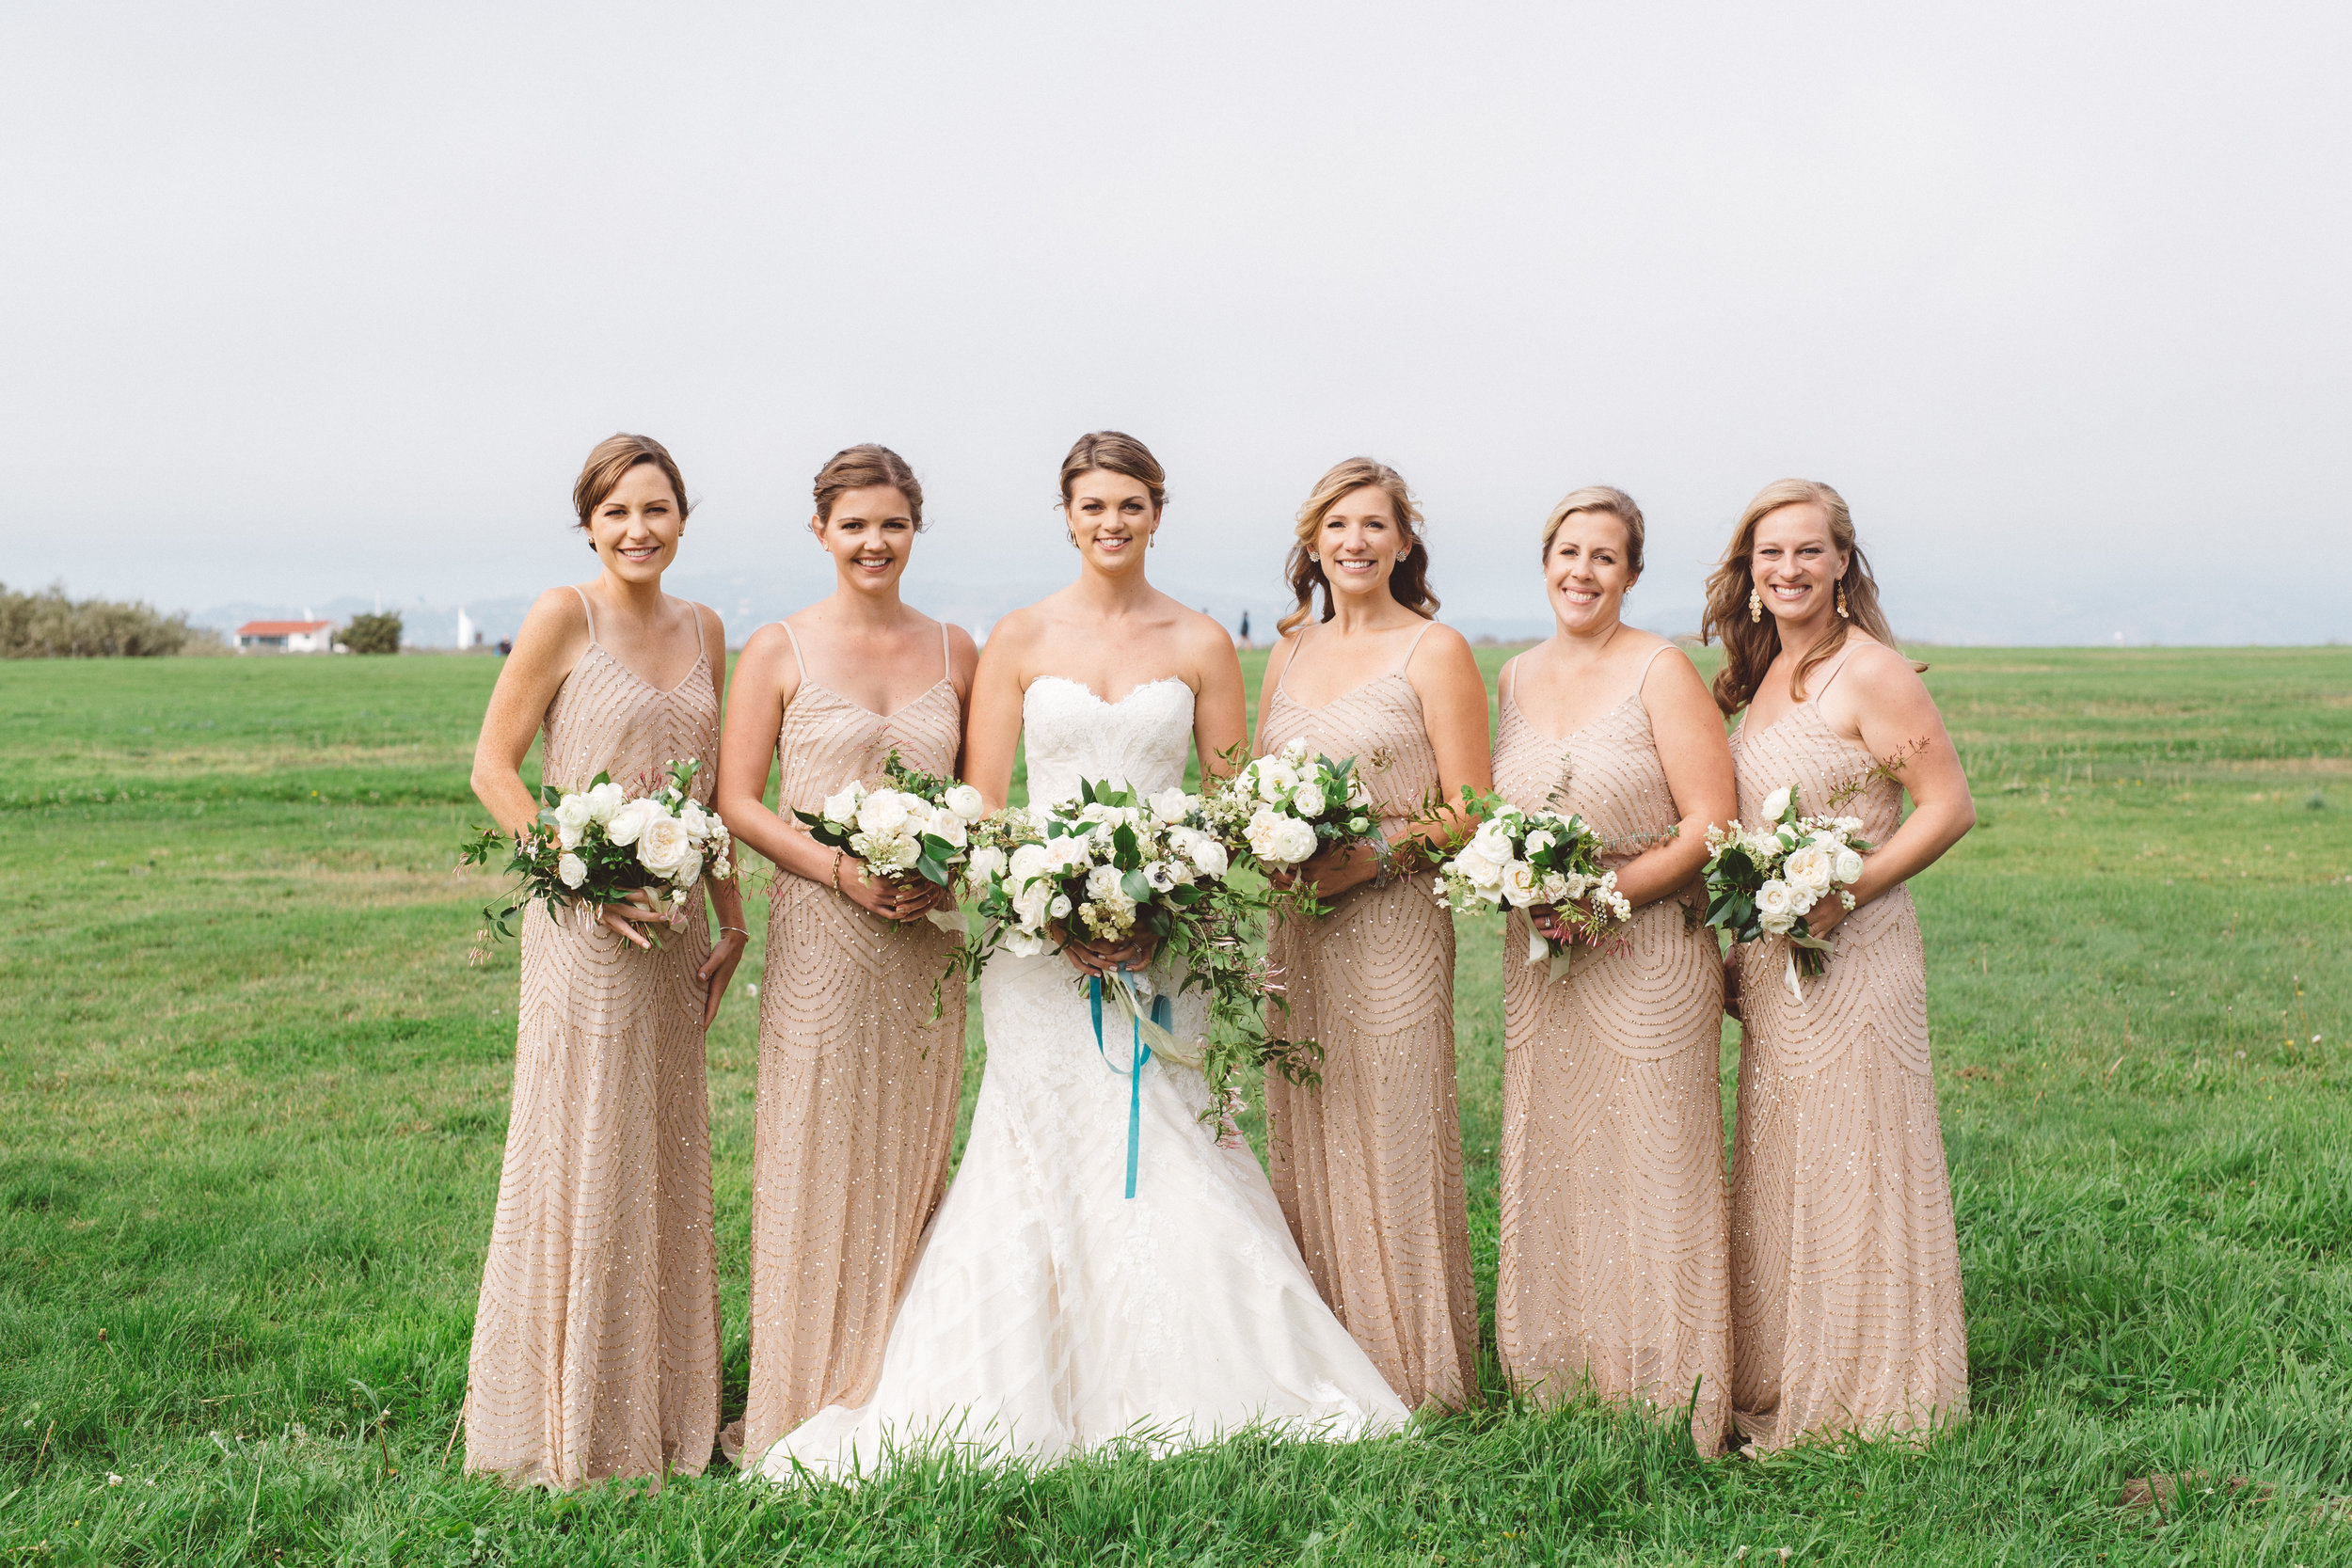 Anna Delores Photography_Lindsay & Curt 09.17.16-424.jpg